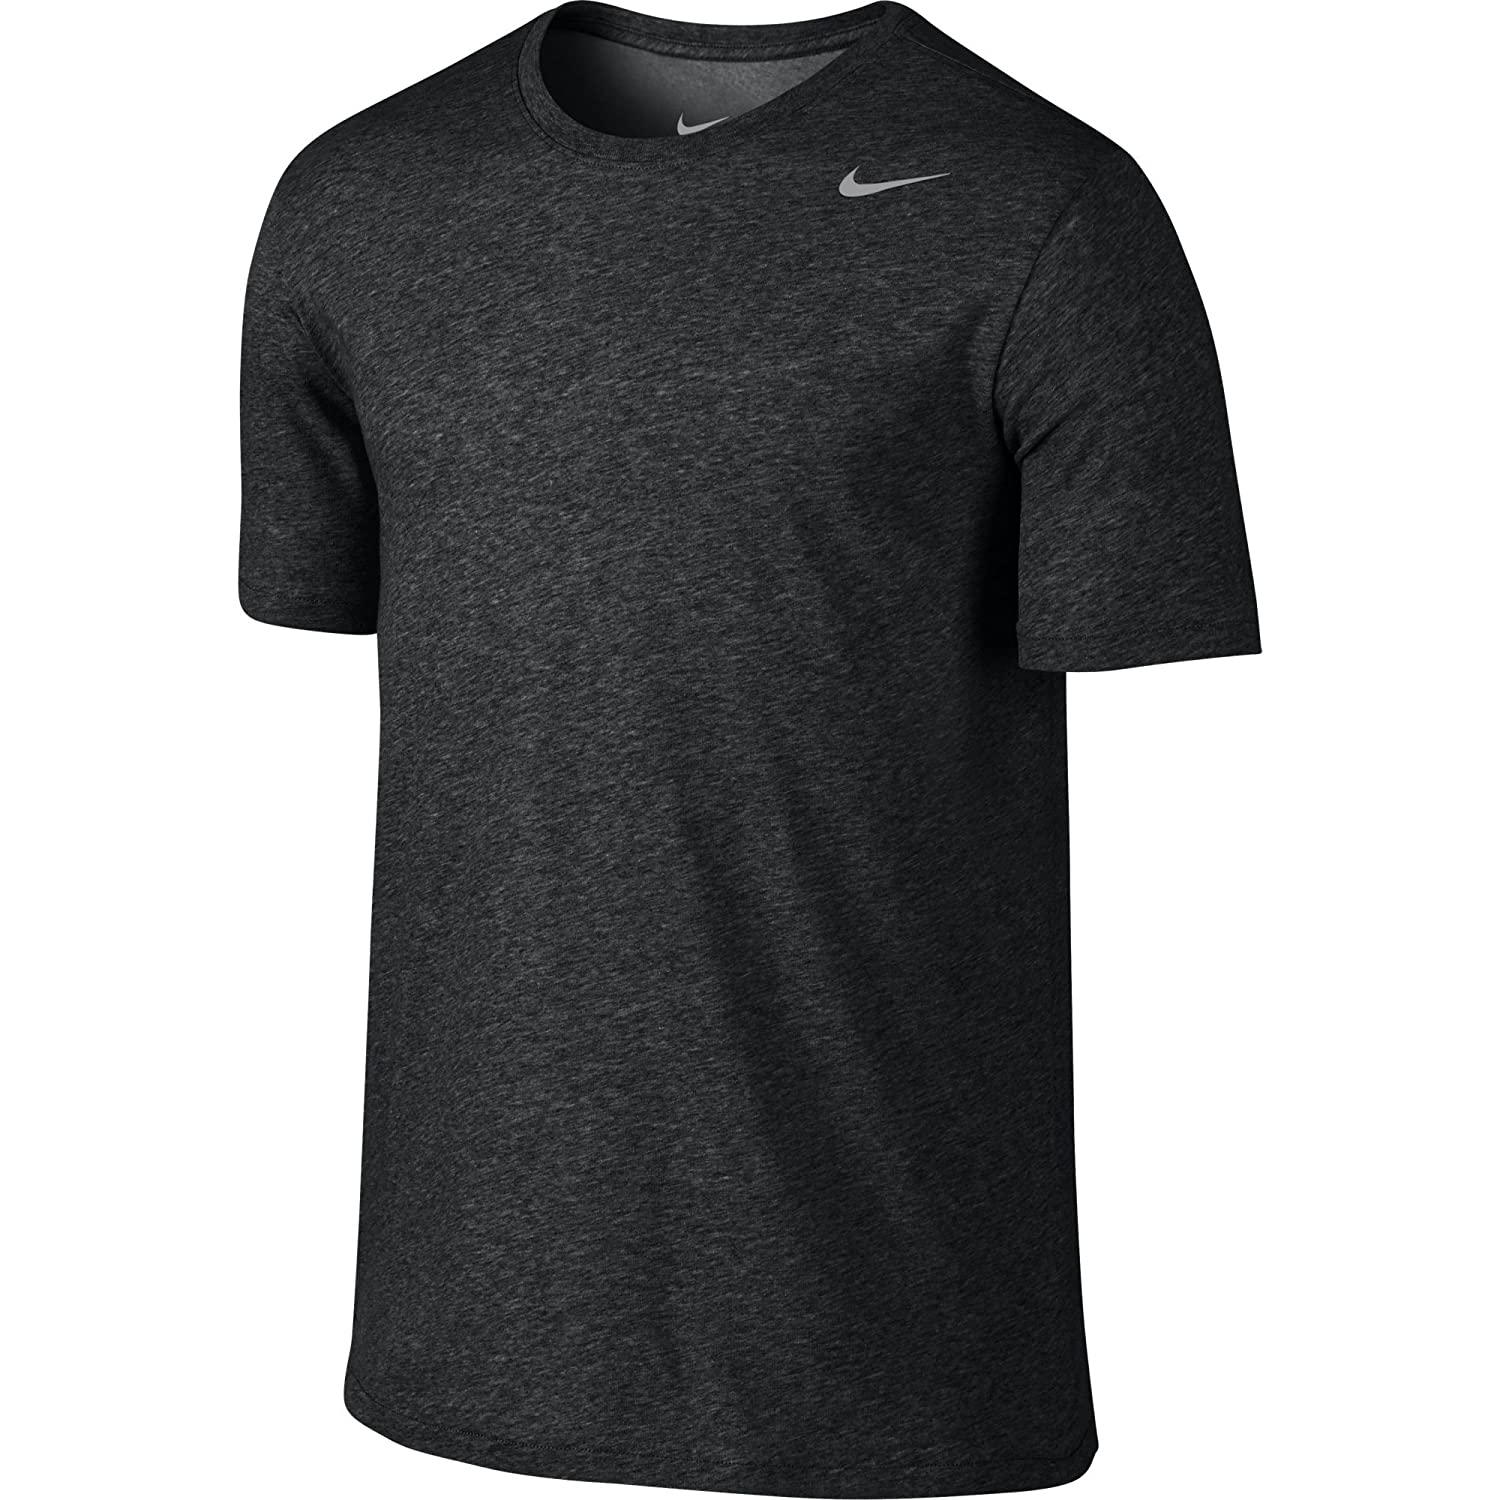 c10ec783 Amazon.com: NIKE Men's Dri-FIT Cotton 2.0 Tee: Clothing